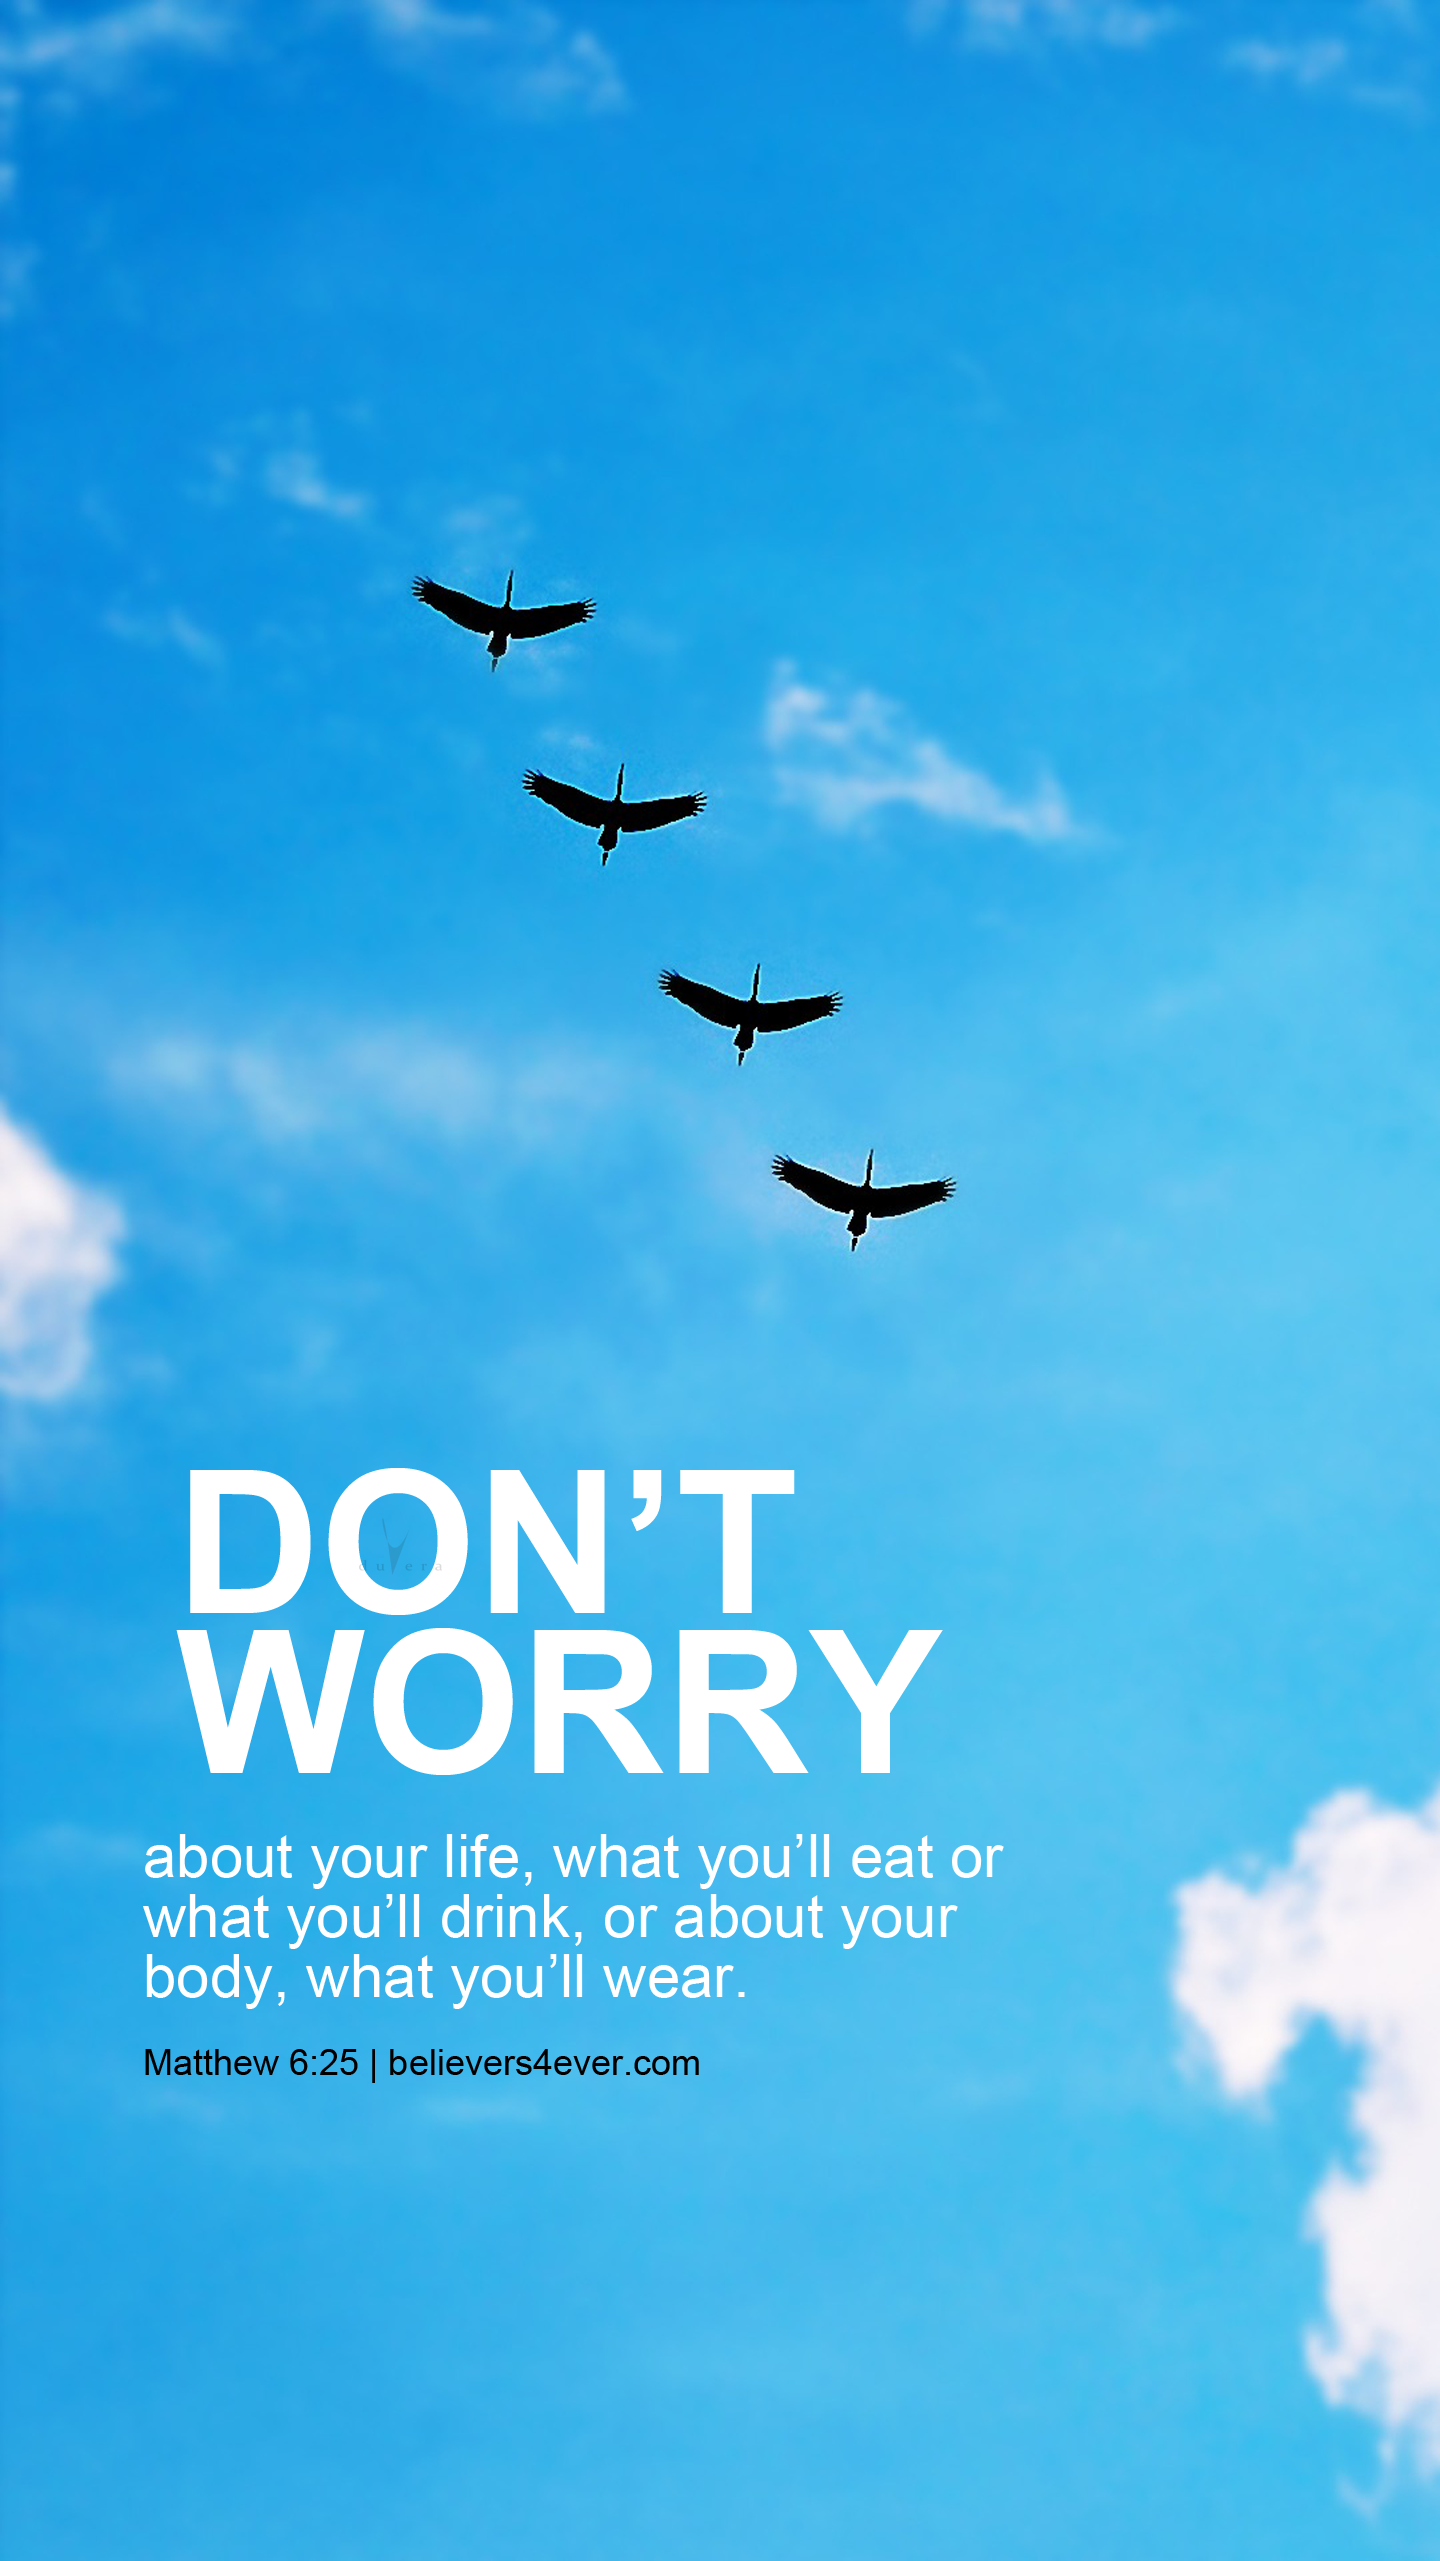 Matthew 6:25, Don't worry, life mobile wallpaper, Christian lockscreen wallpaper